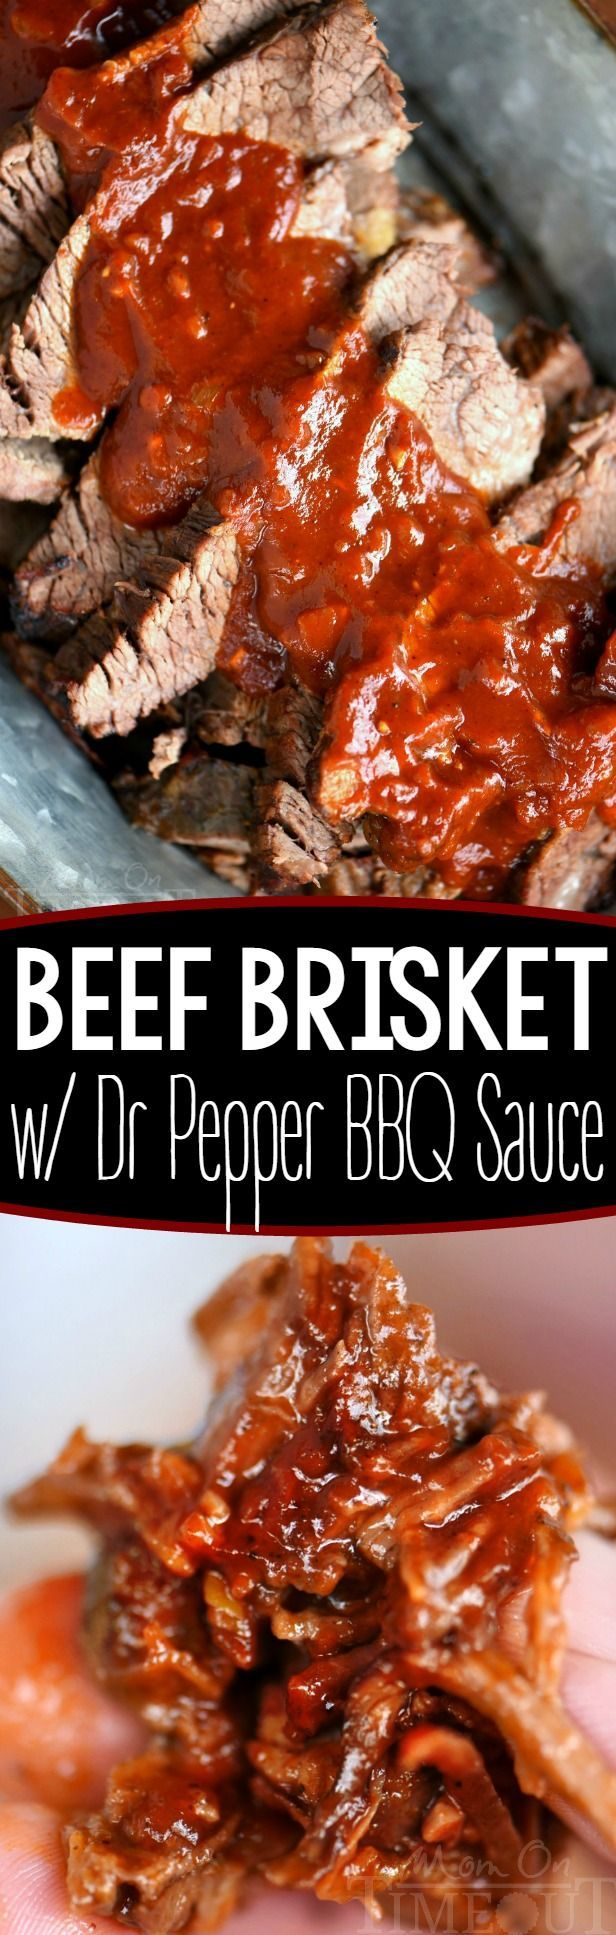 Your new favorite - Beef Brisket with Dr Pepper Barbecue Sauce! Feeding a crowd? Look no further for the perfect recipe to serve up from your grill! The Dr Pepper Barbecue Sauce is going to blow your mind! The perfect dinner recipe for your next BBQ or party!